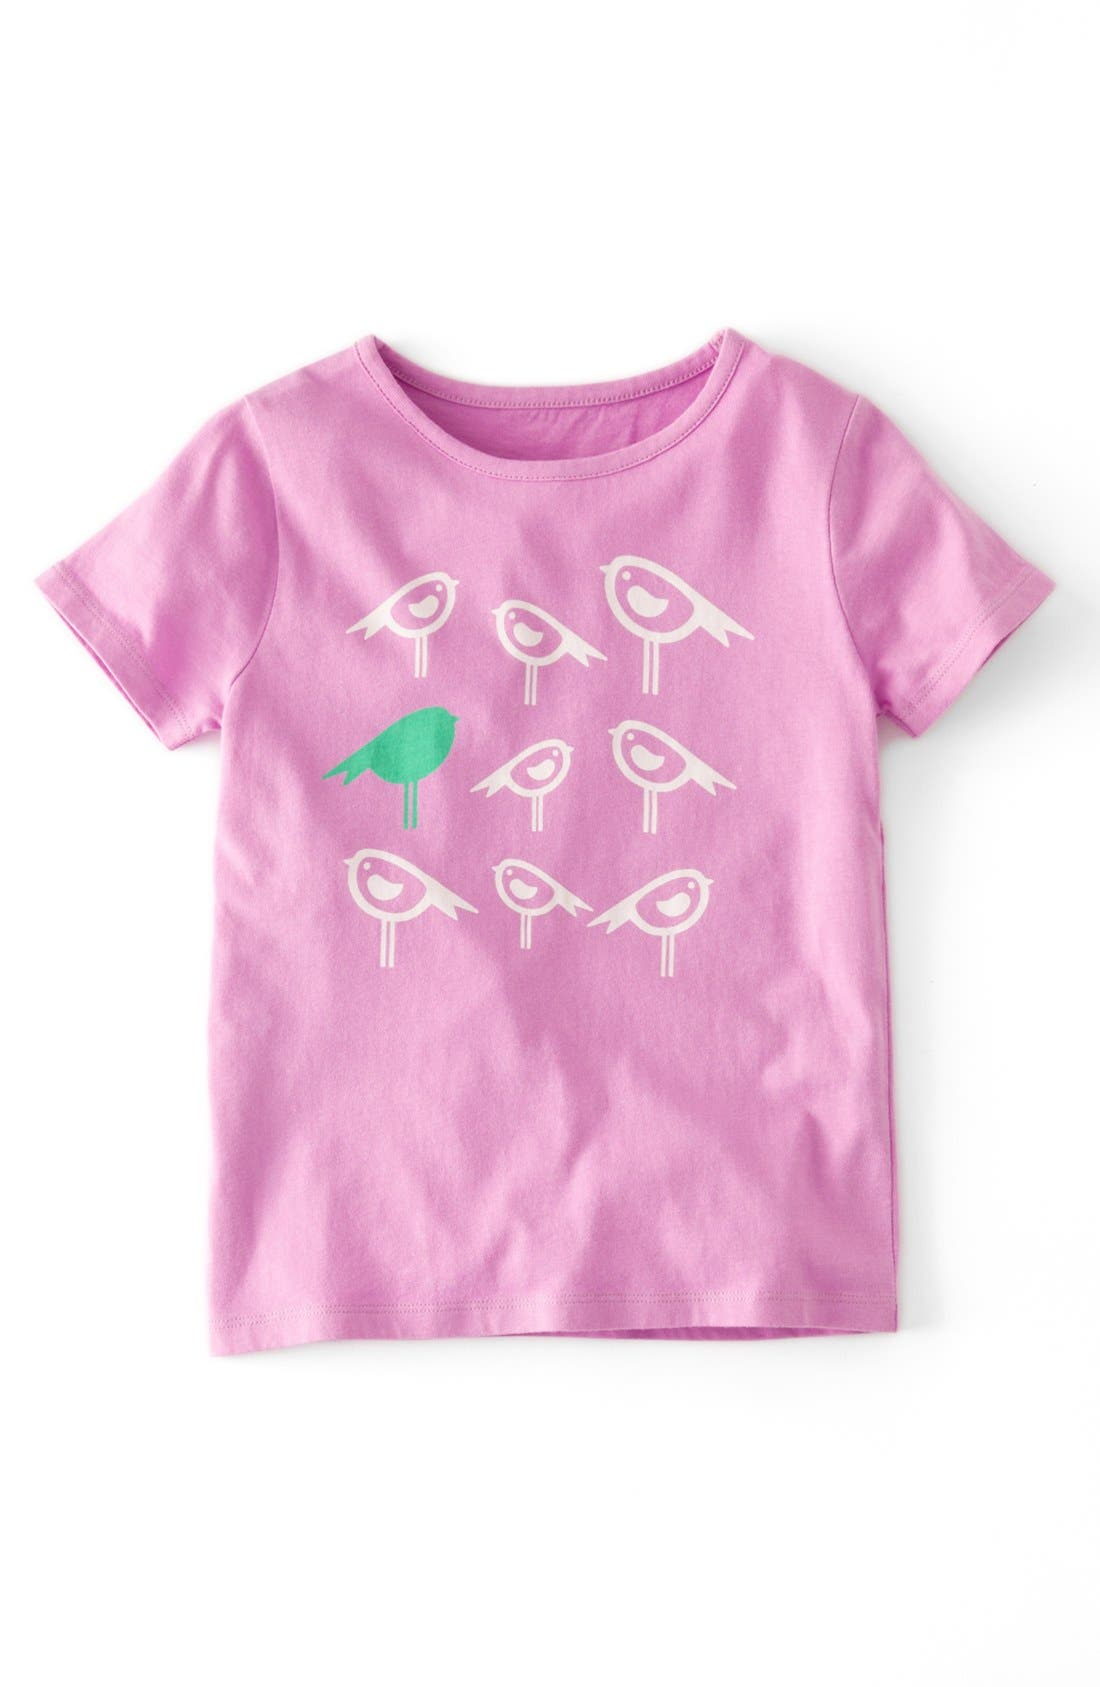 Alternate Image 1 Selected - Mini Boden Short Sleeve T-Shirt (Toddler Girls, Little Girls & Big Girls)(Online Only)